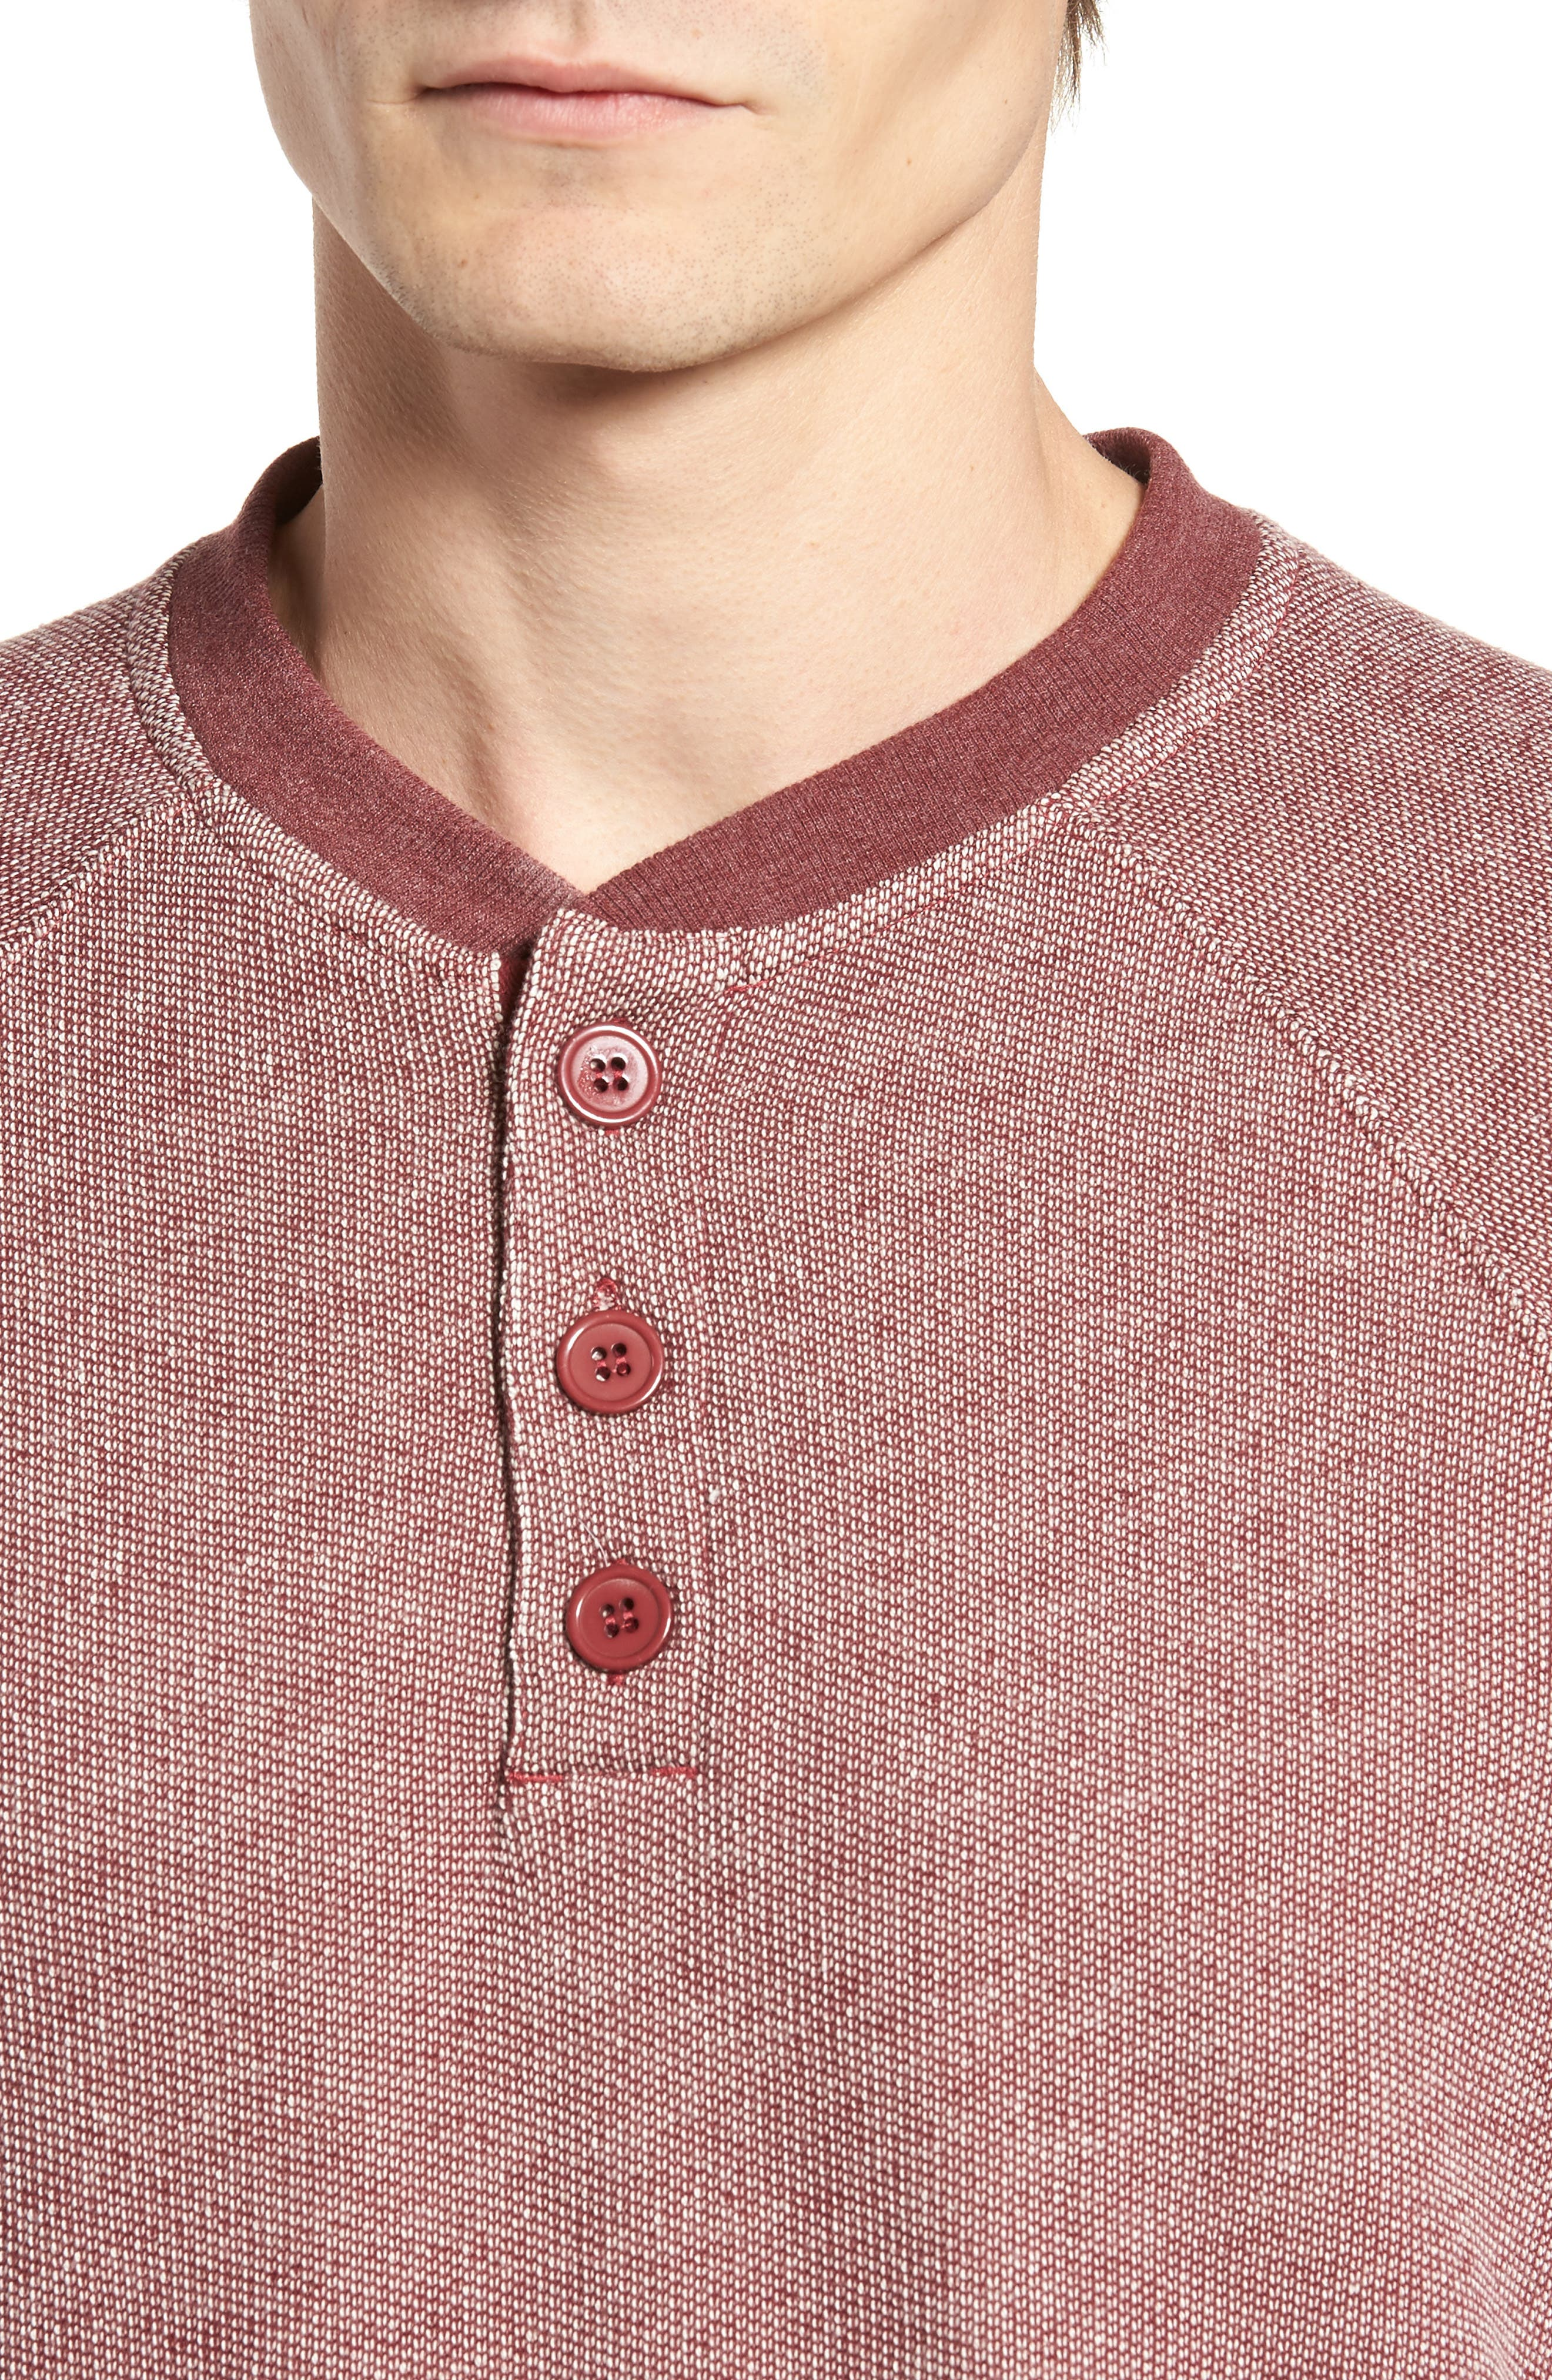 Capo Henley Pullover,                             Alternate thumbnail 4, color,                             Tawny Port